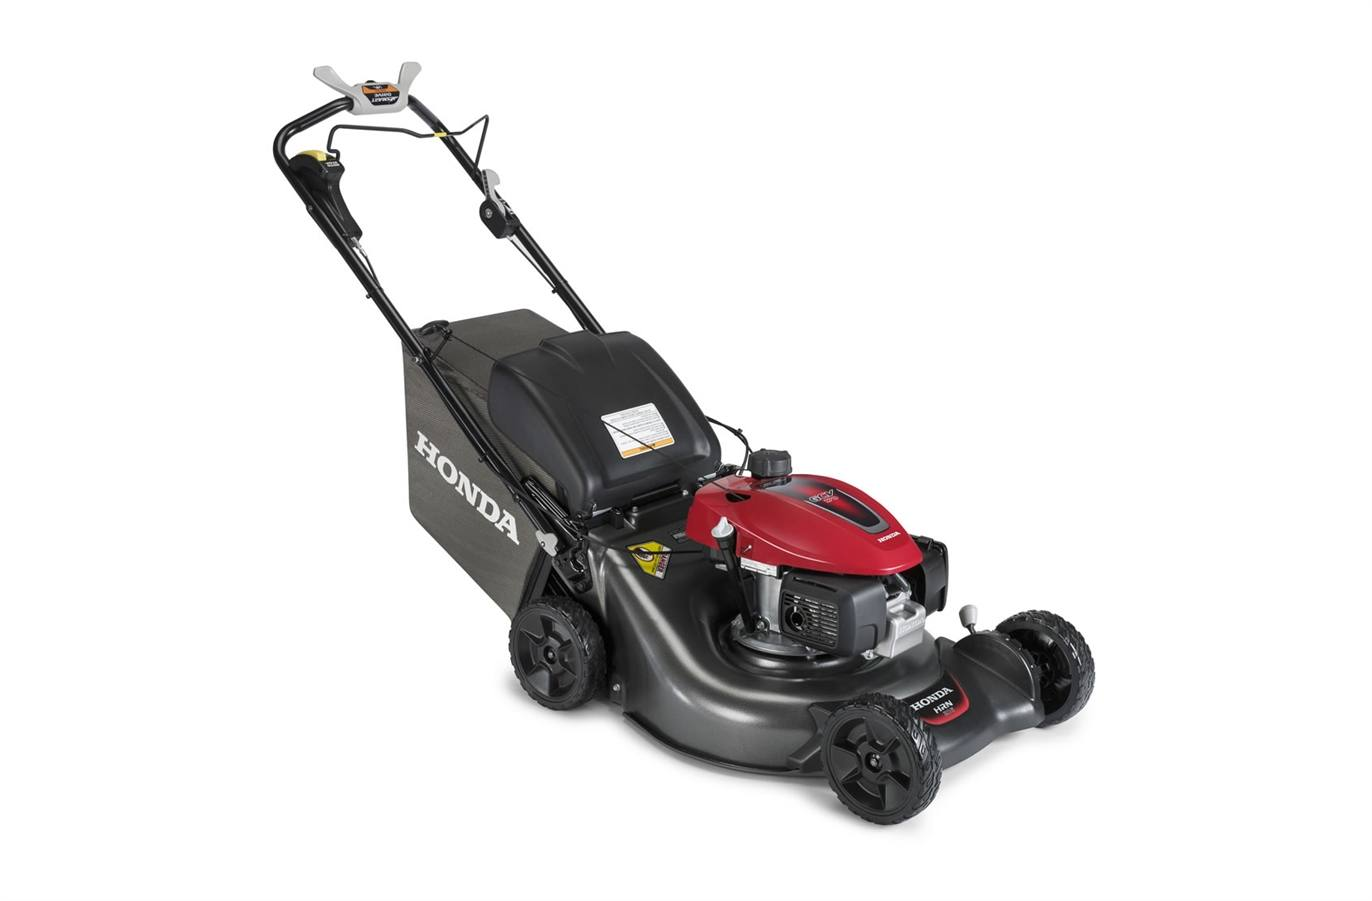 new residential lawn mowers from honda power equipment kimps power center green bay  wi  920